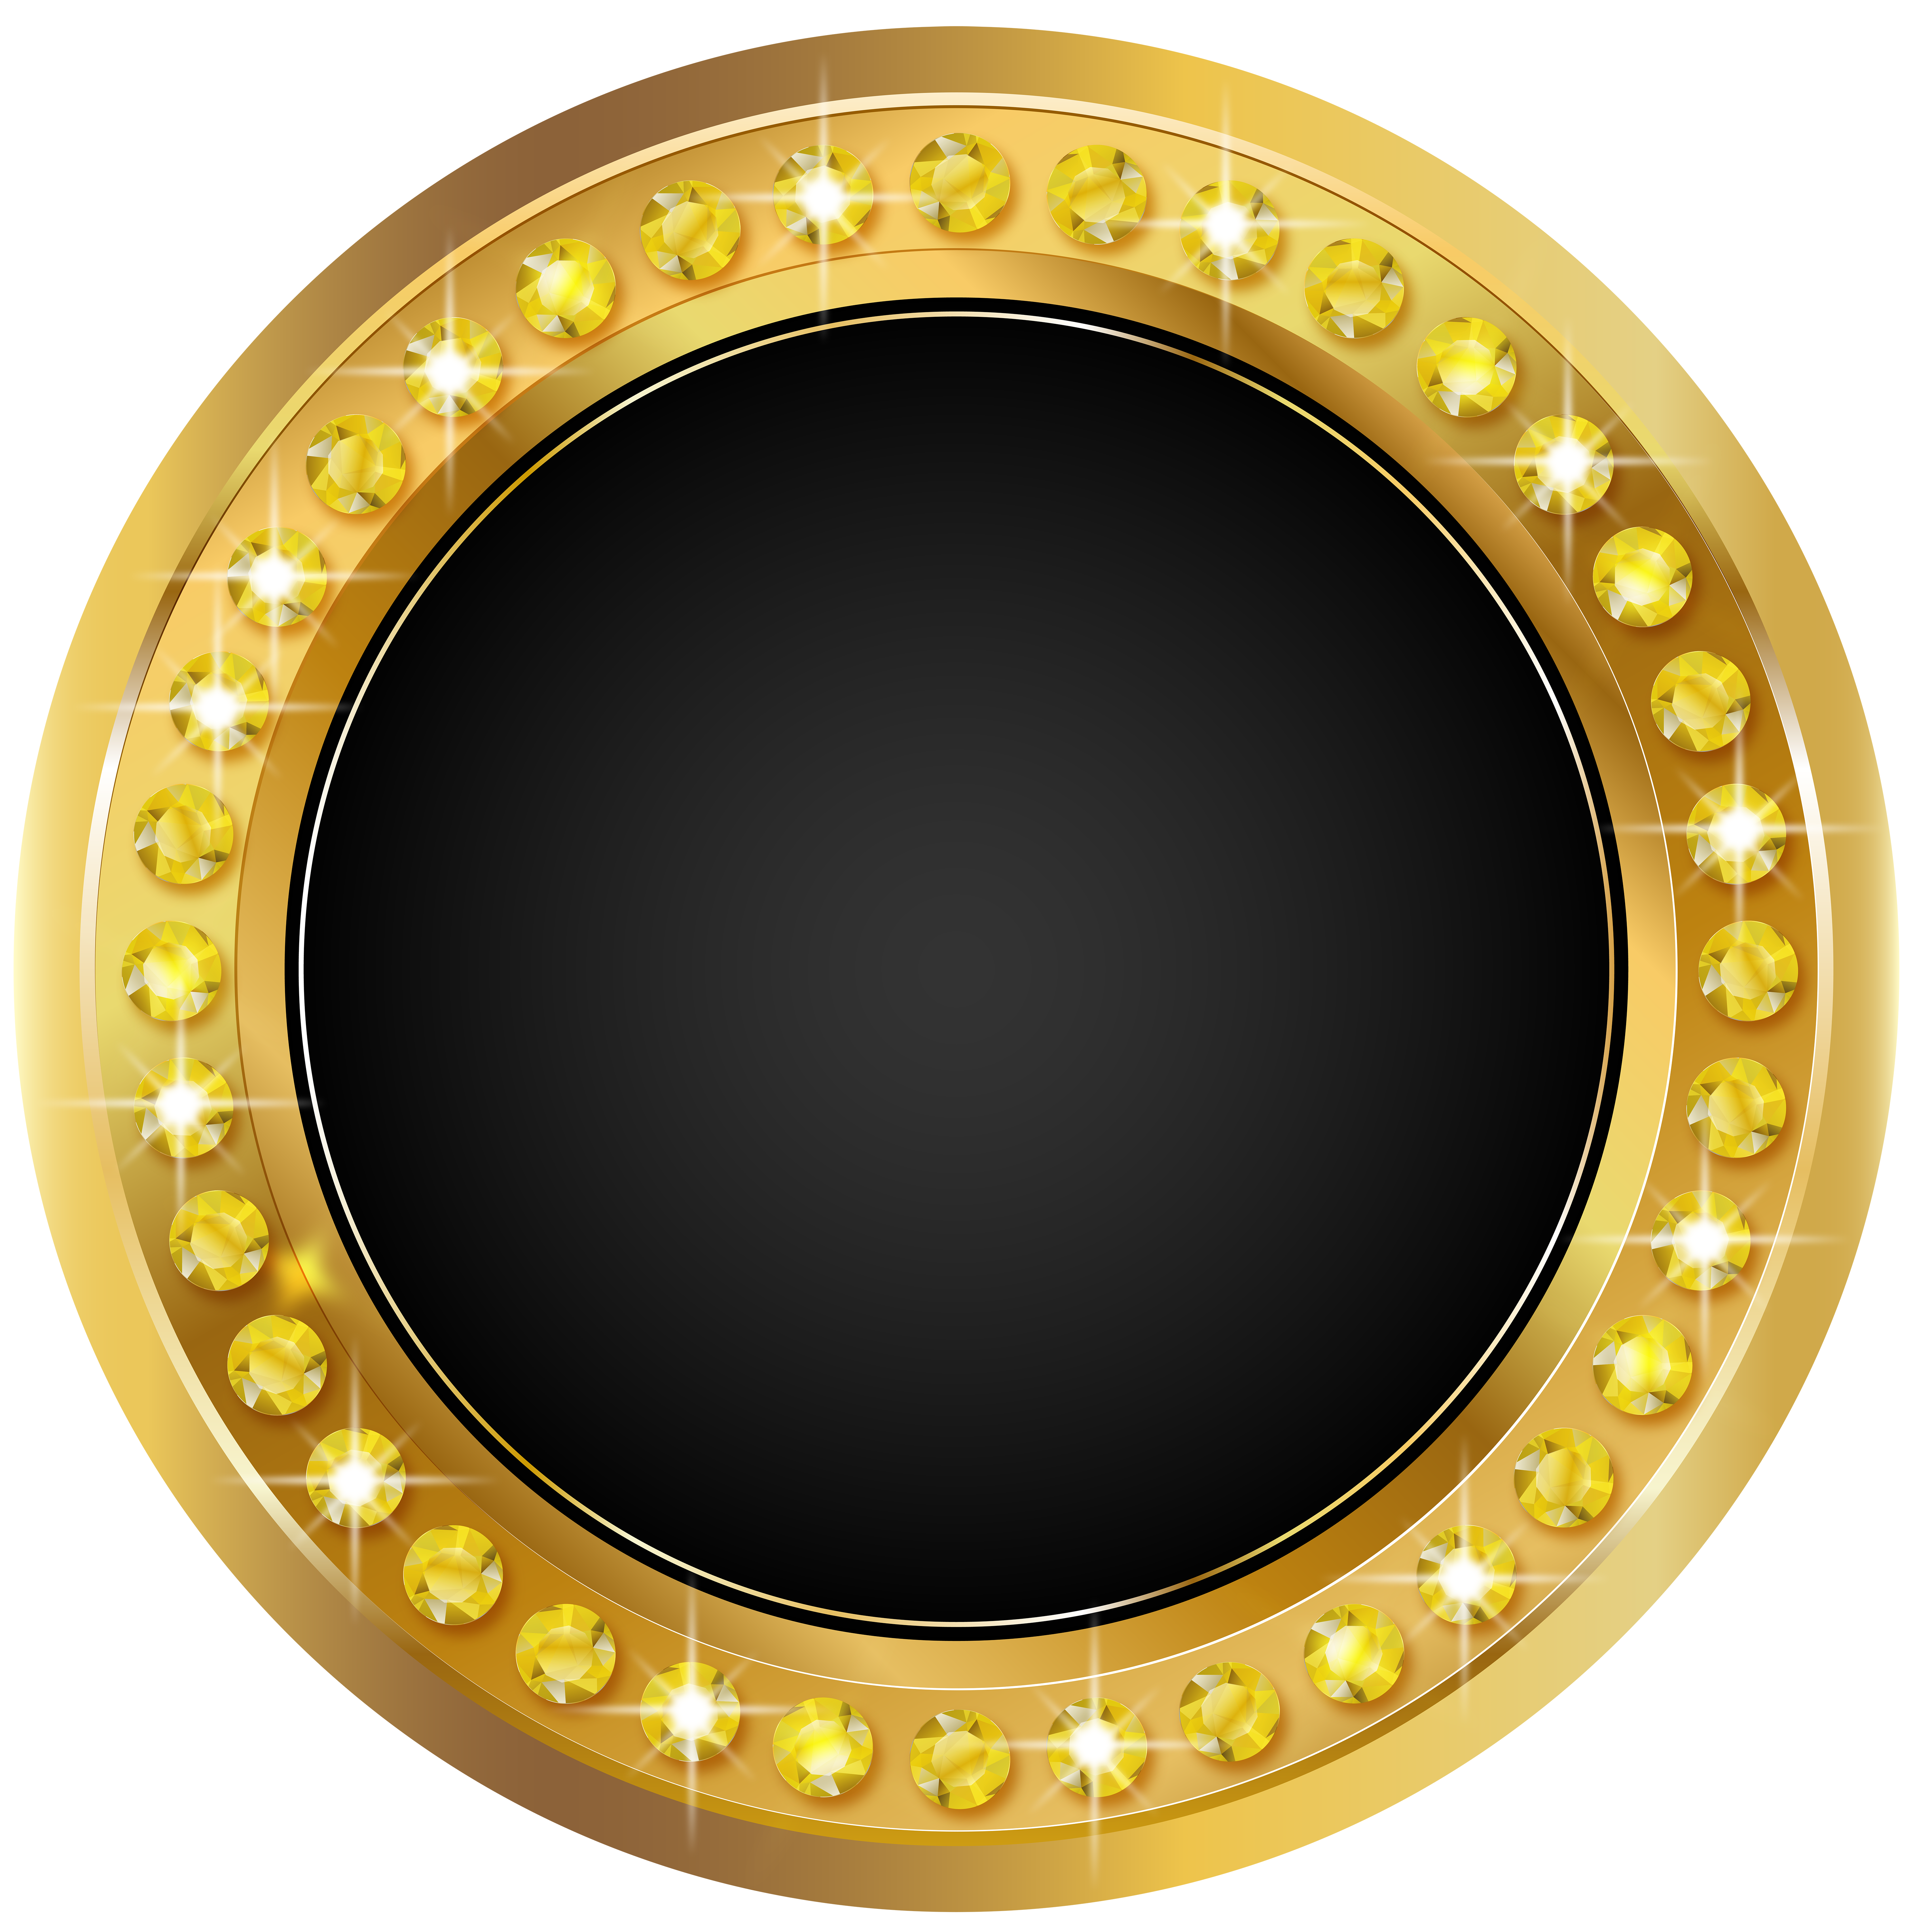 seal gold black png transparent clip art image gallery #24161